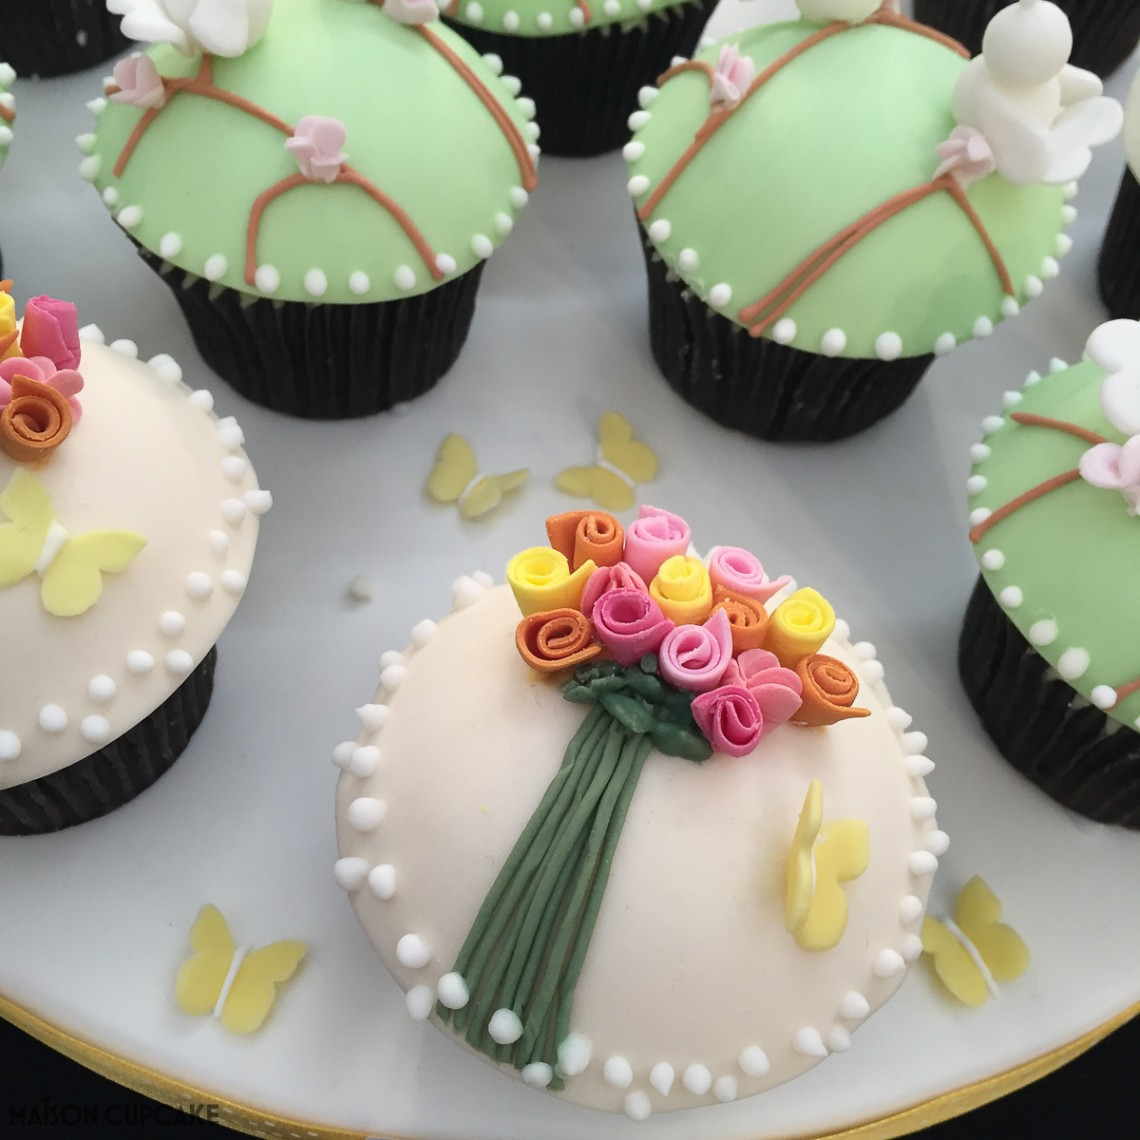 Bouquet with Lovebirds Cupcakes by Heather Holland